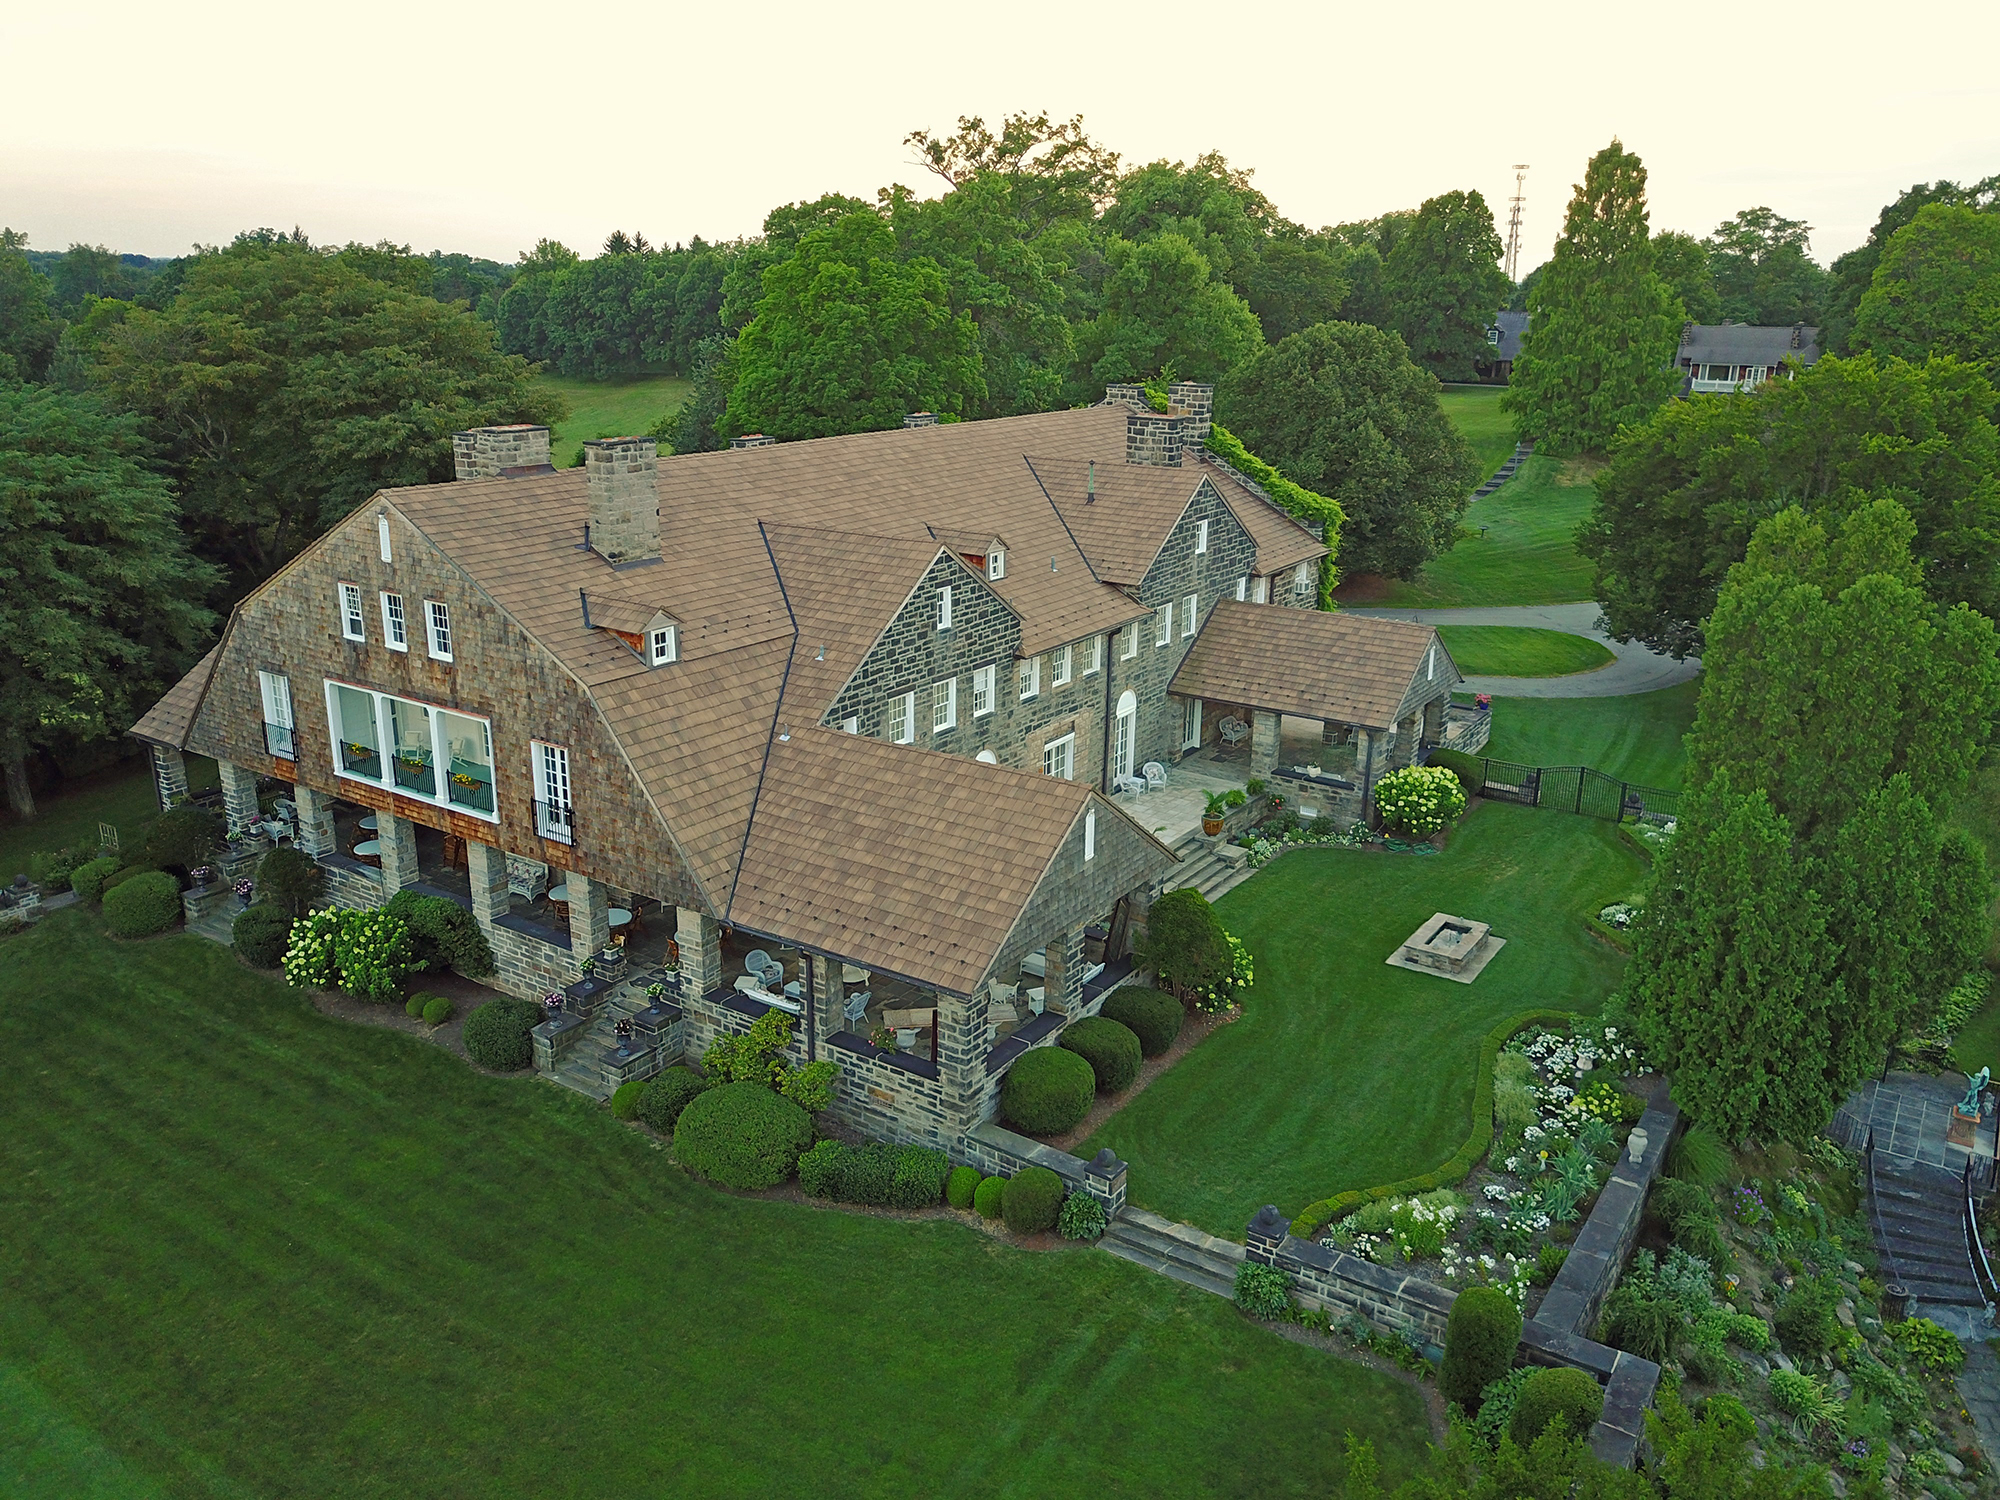 Drone view of Wilpen Hall, Sewickley, Pa.